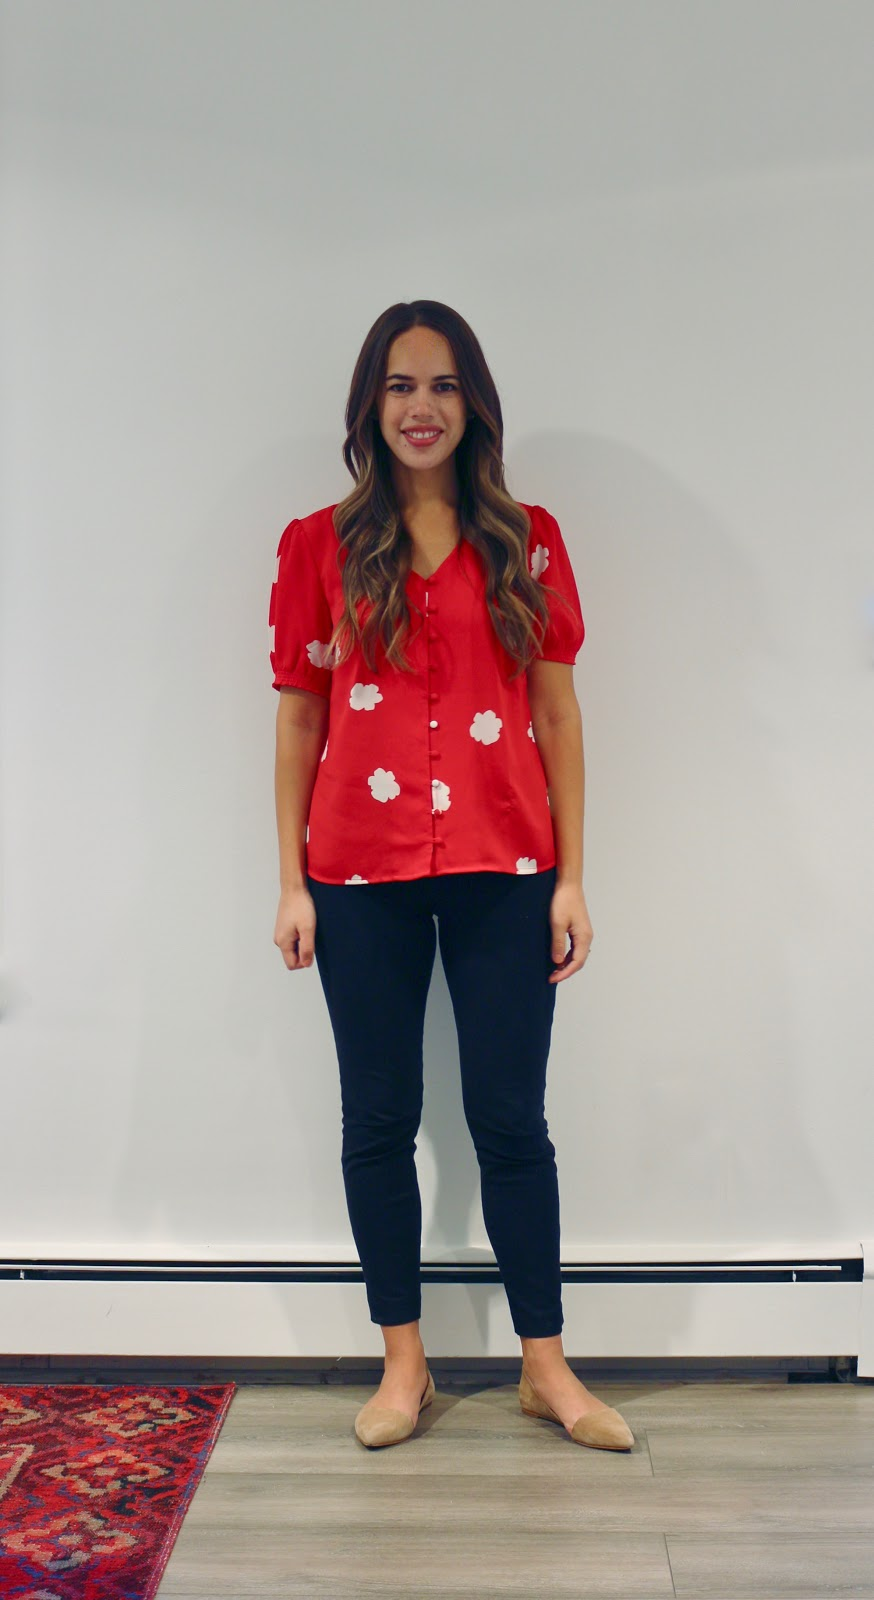 Jules in Flats - Red Floral Button Front Blouse (Business Casual Workwear on a Budget)